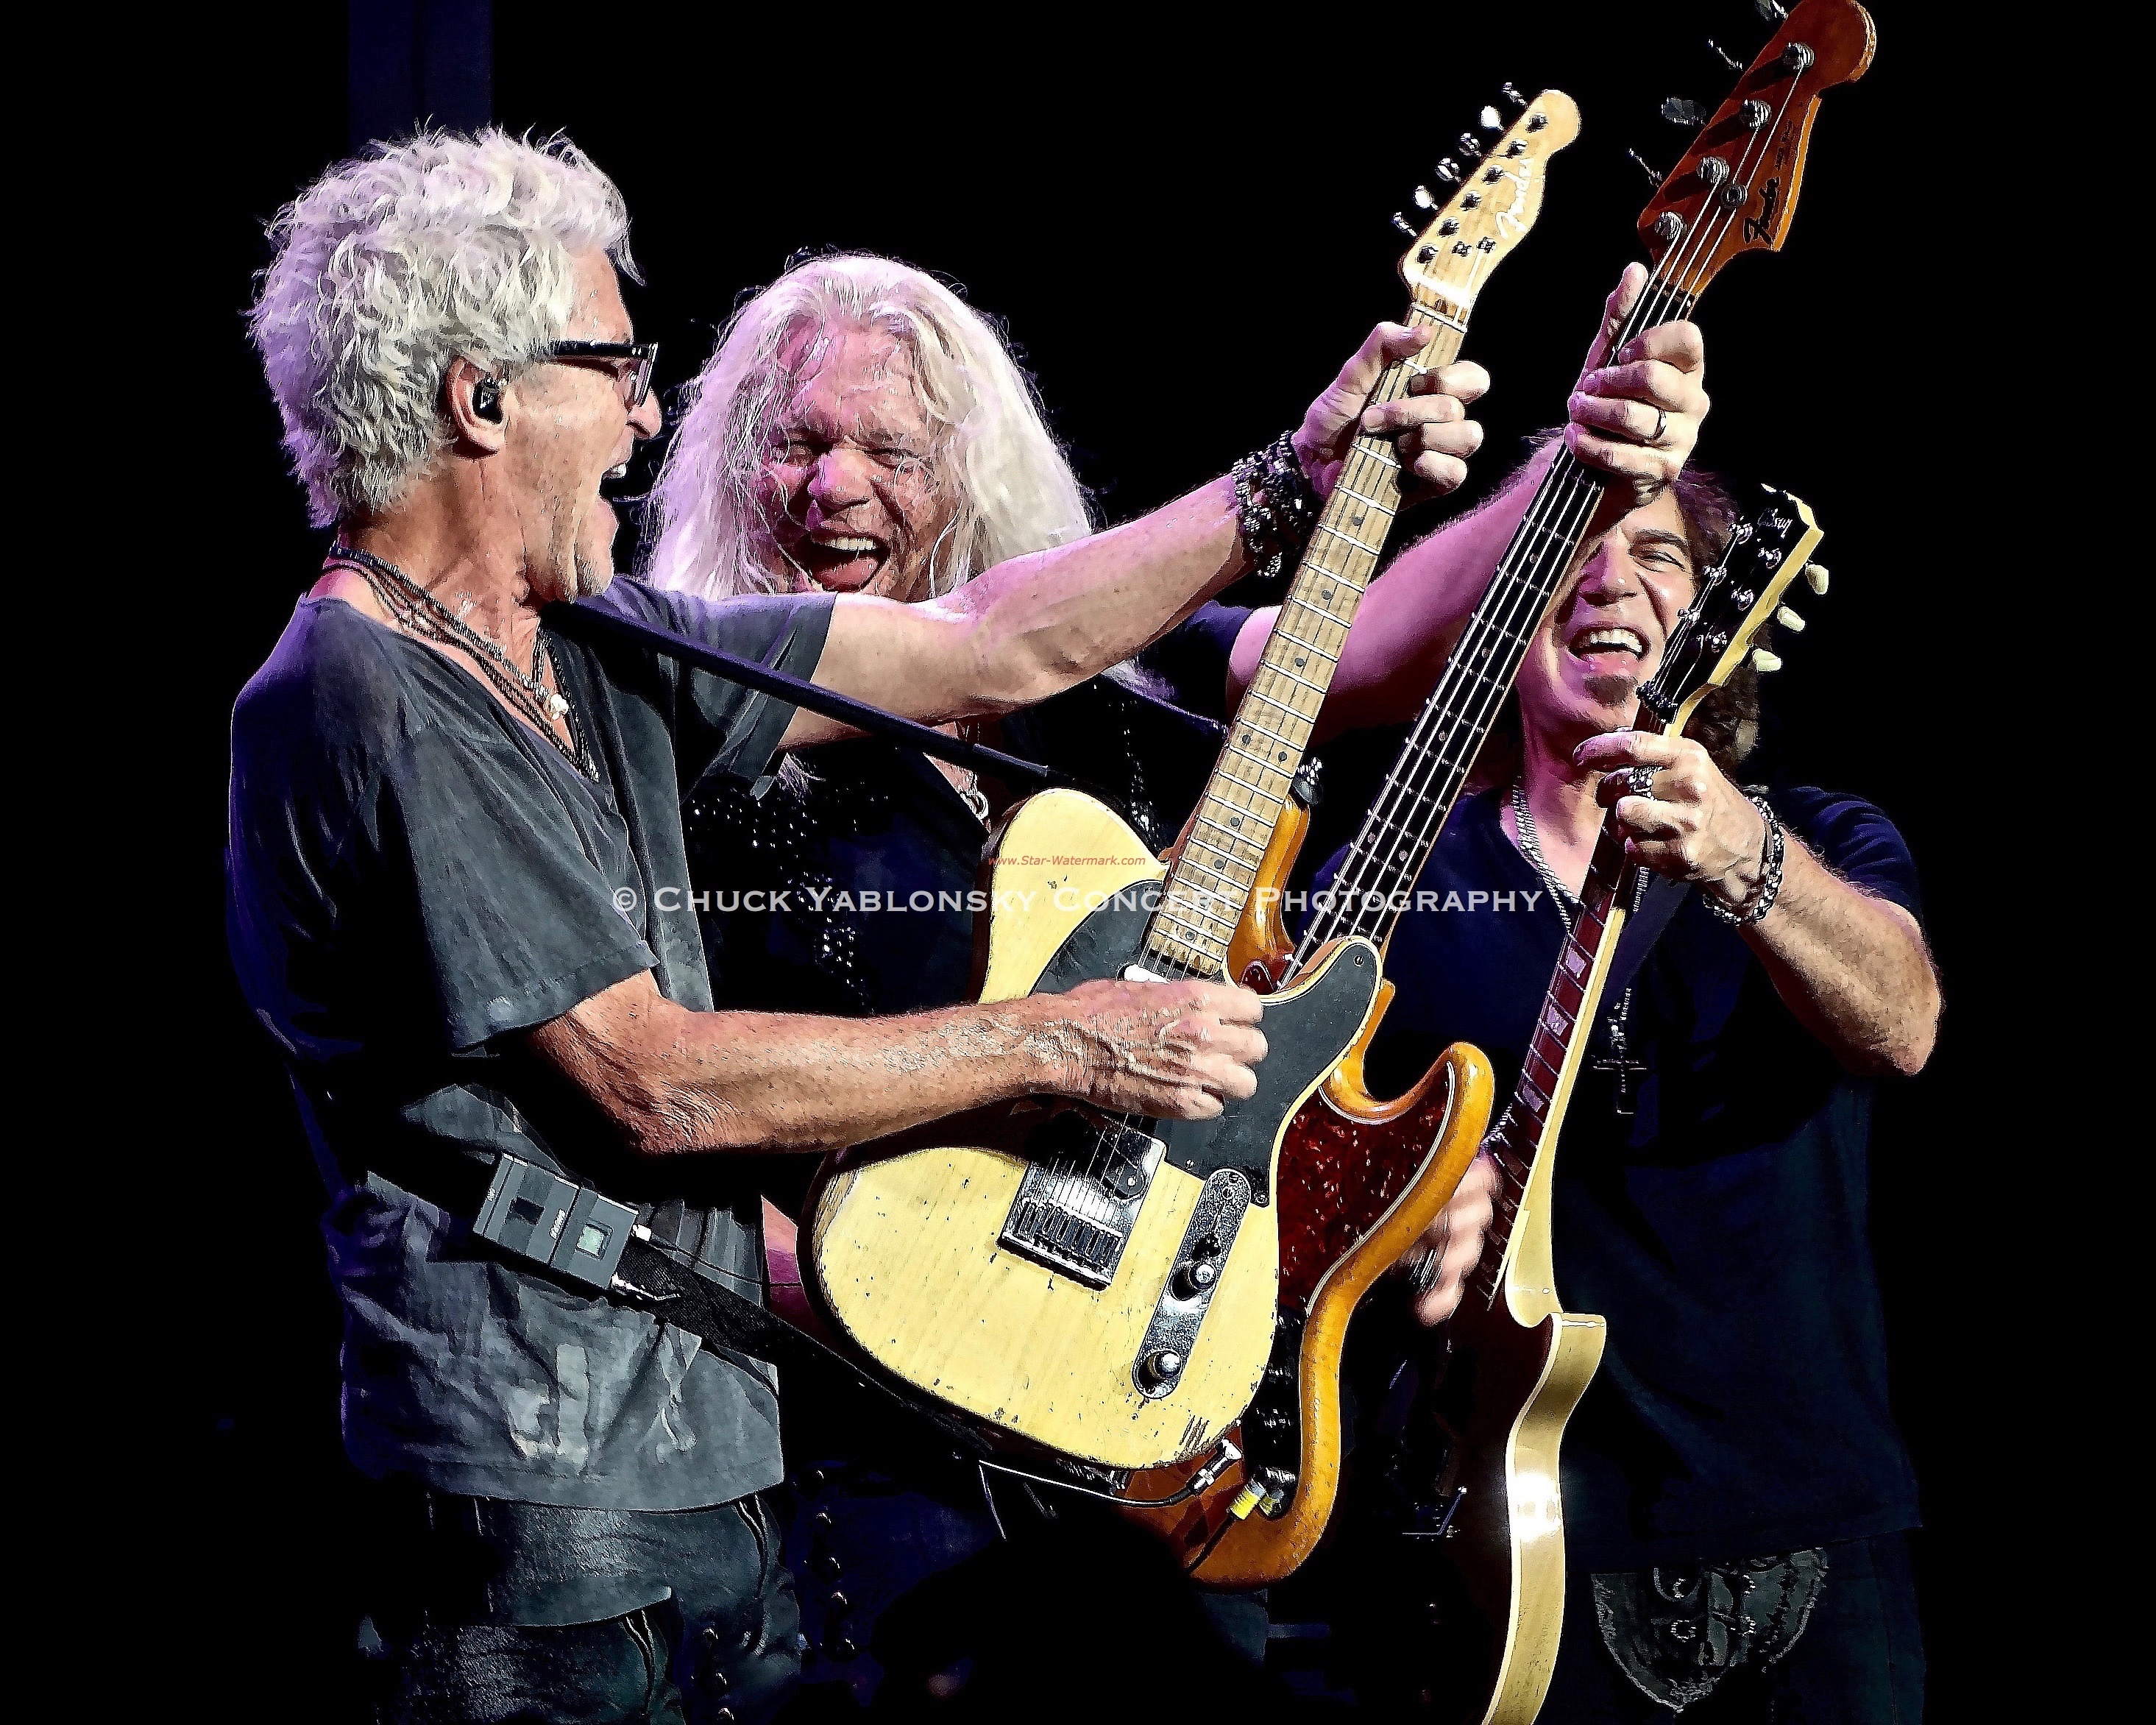 Kevin Cronin, Bruce Hall & Dave Amato - REO Speedwagon